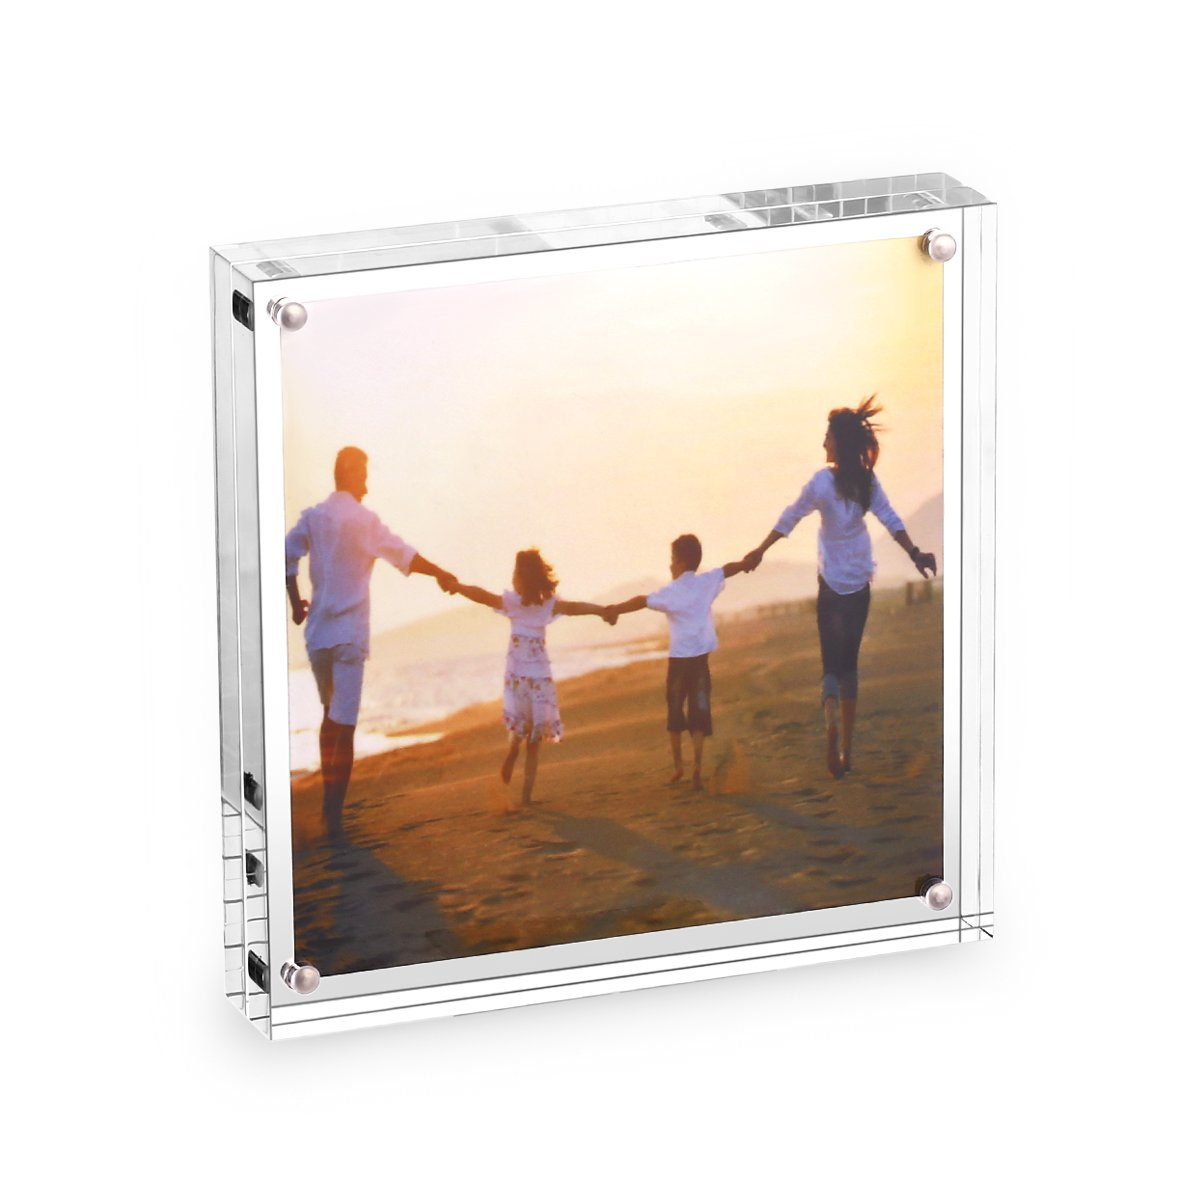 Amazon.com - HESIN 5 by 5 inch Clear Acrylic Photo Frame Thickness ...